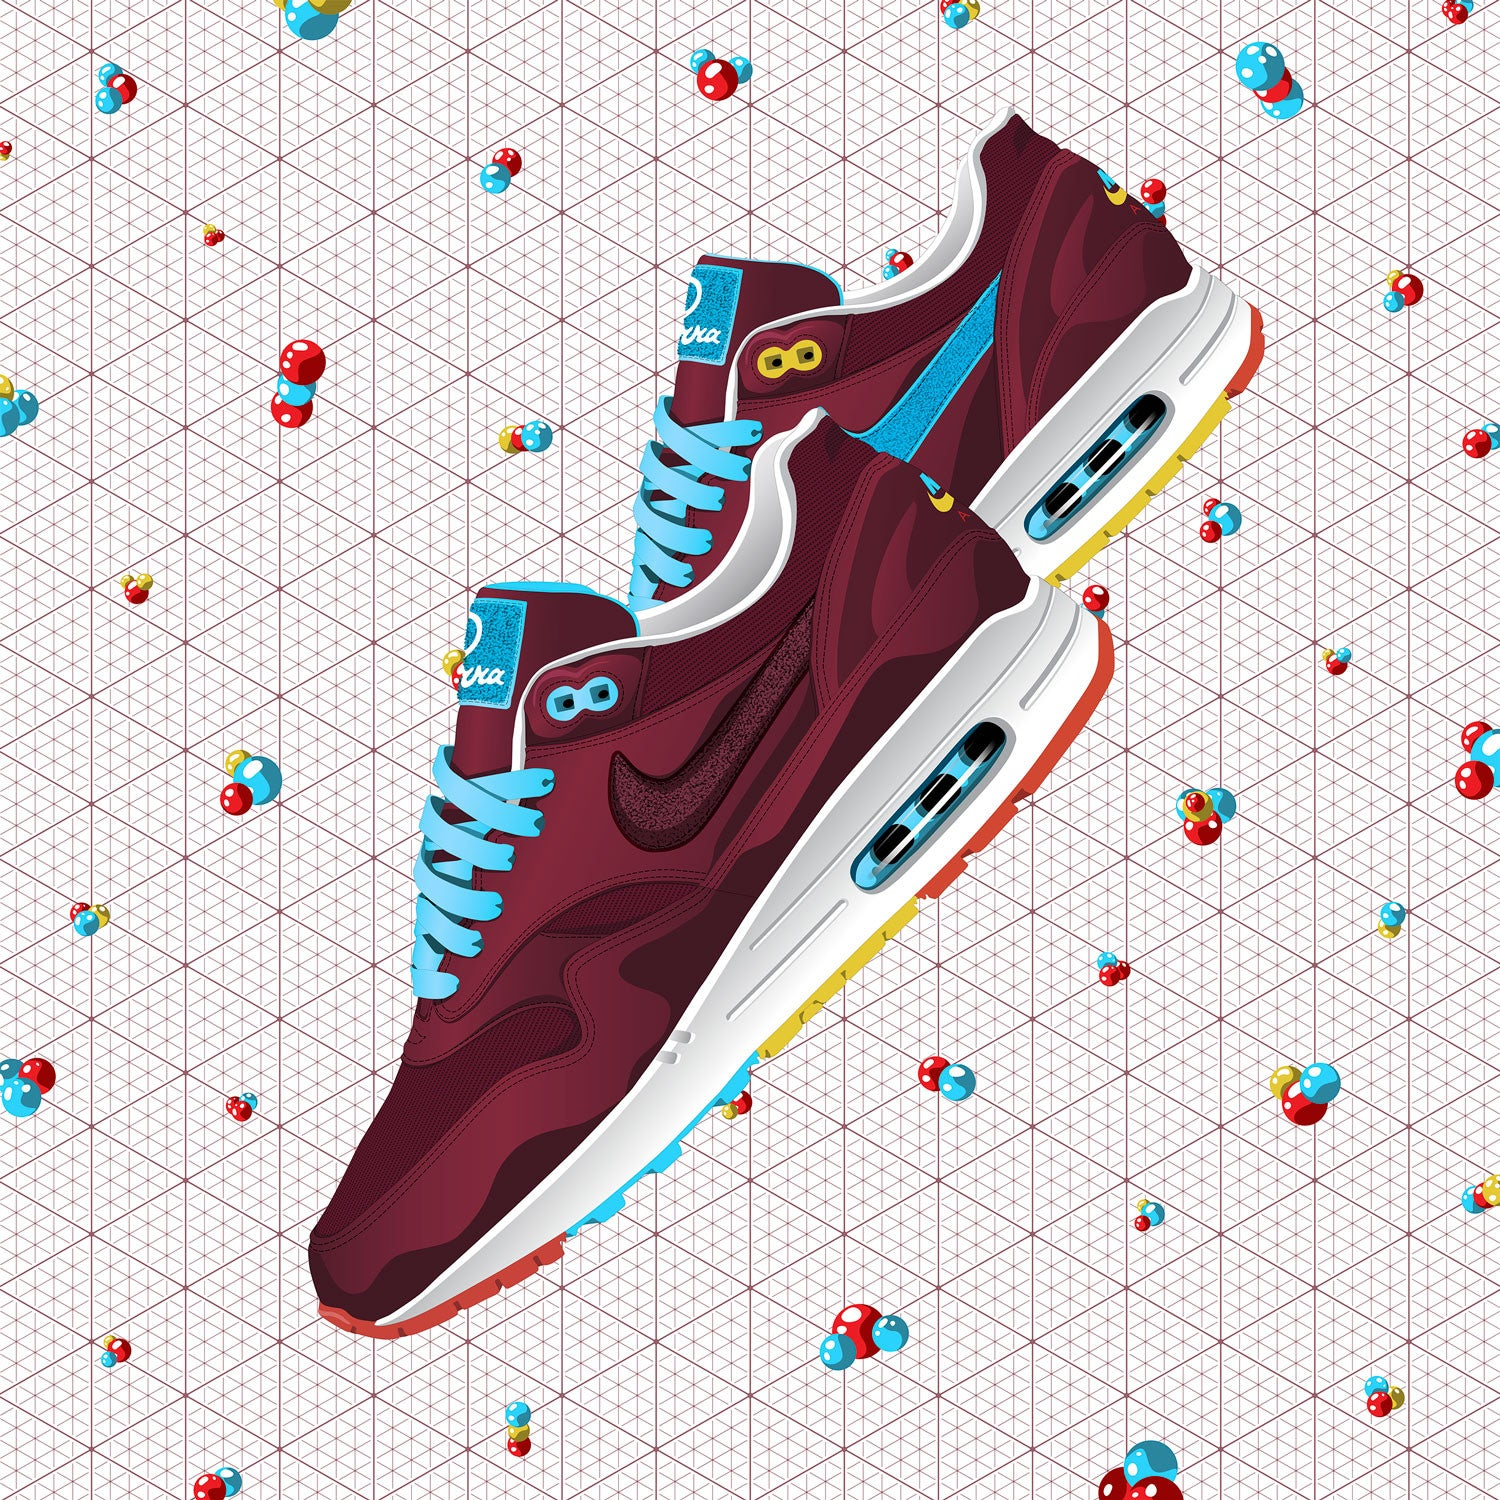 Contemporary Sneaker Art of the Nike Air Max 1 Patta x Parra